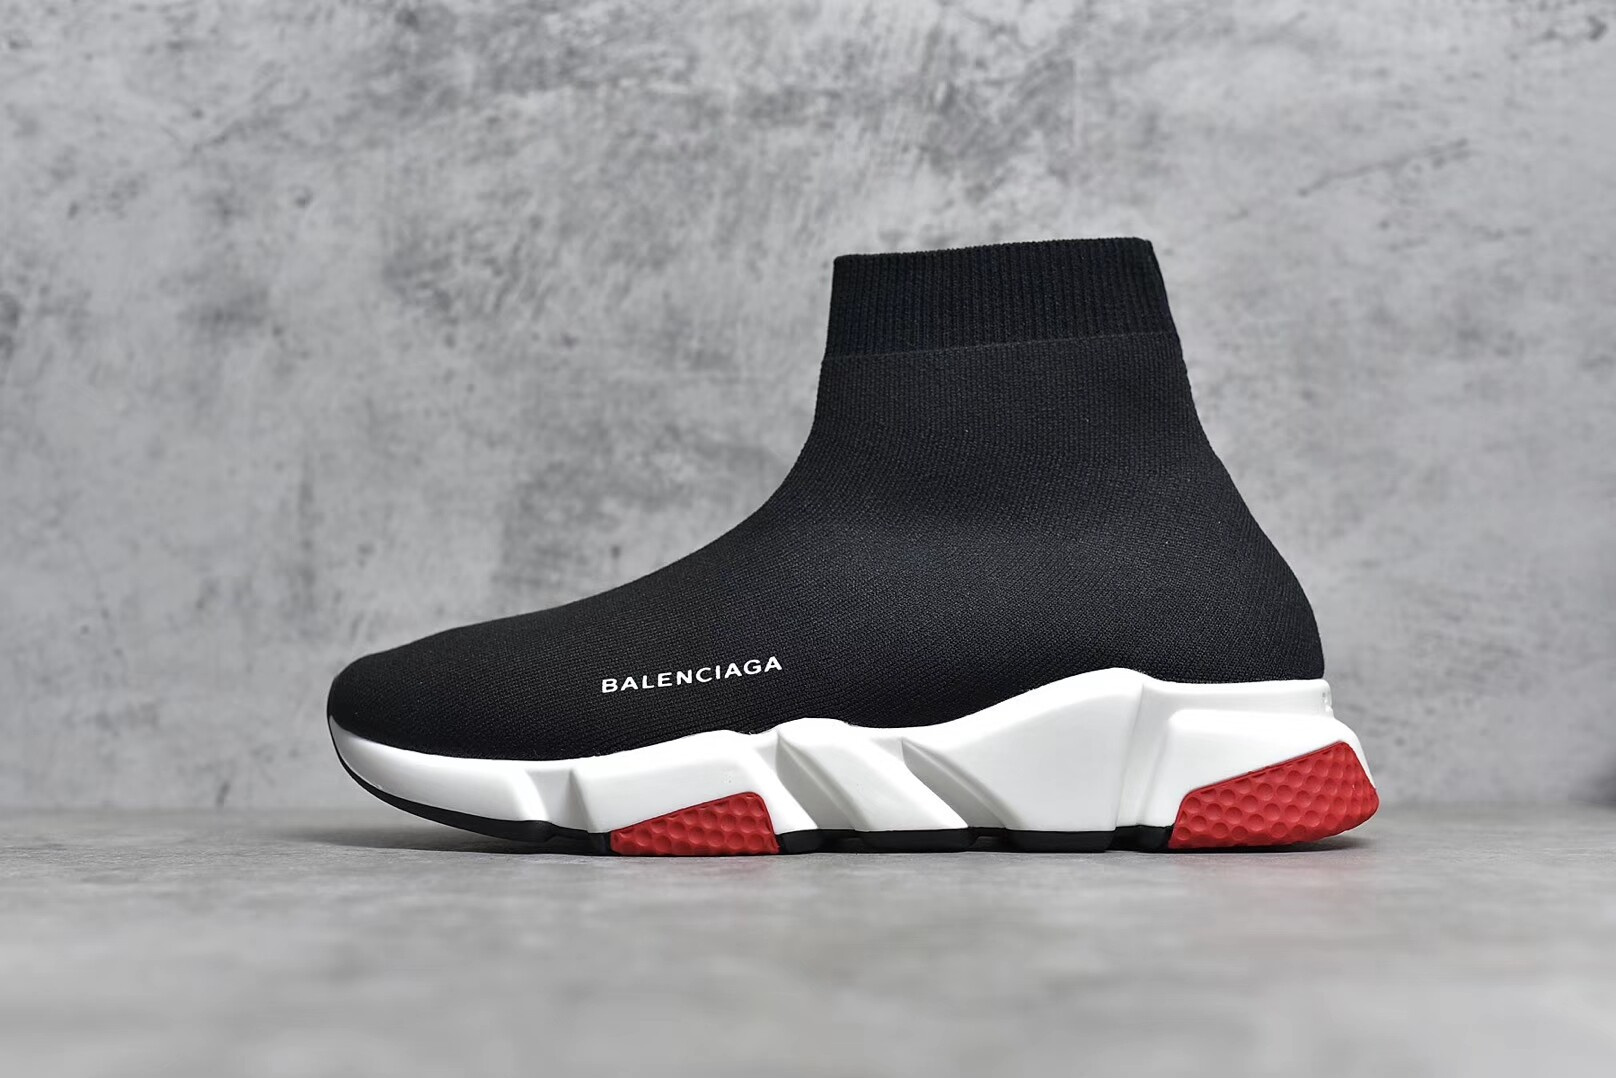 c1062d1f5a6 Balenciaga Speed Trainers With Tricolor Sole Knit Sock Effect Black Red